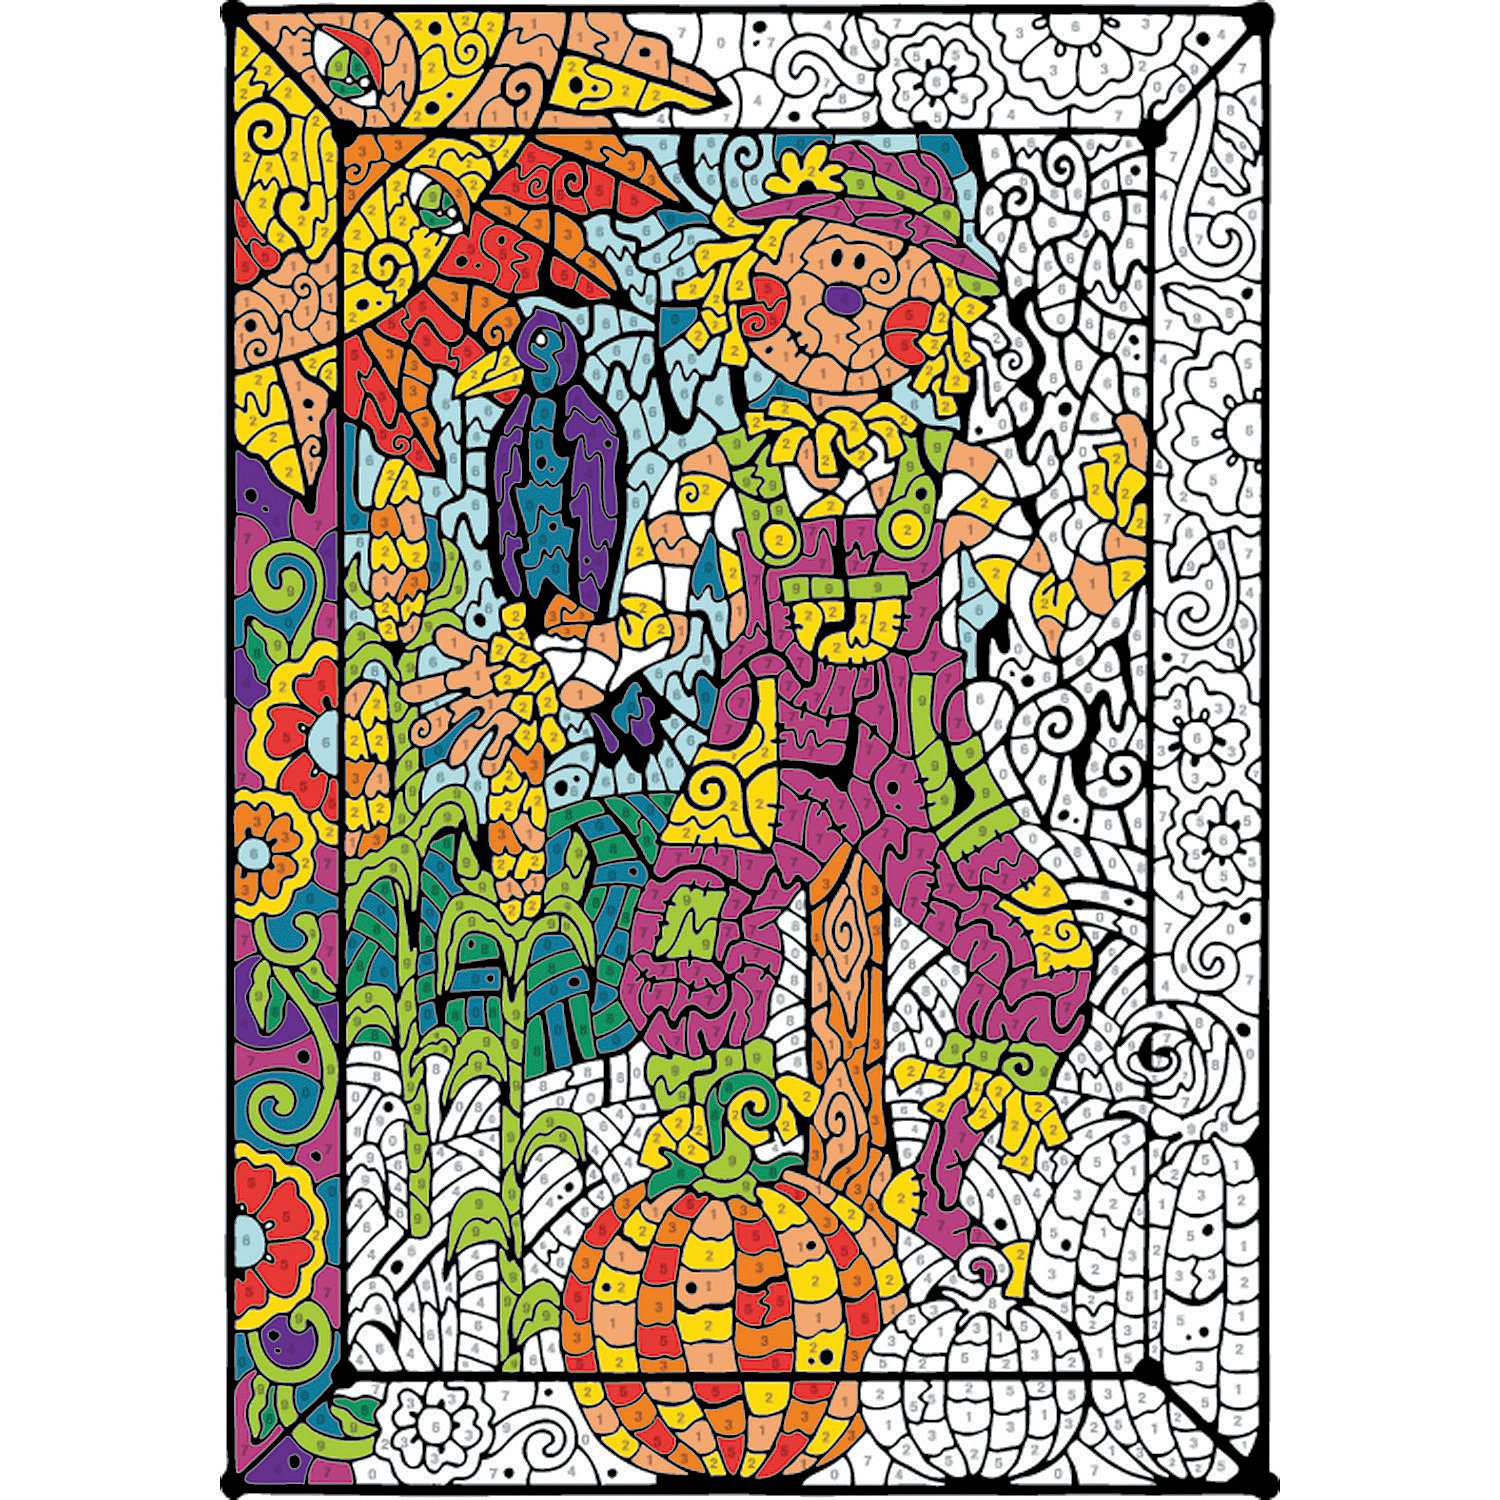 Color counts garden older adults adult coloring books for Color counts coloring pages